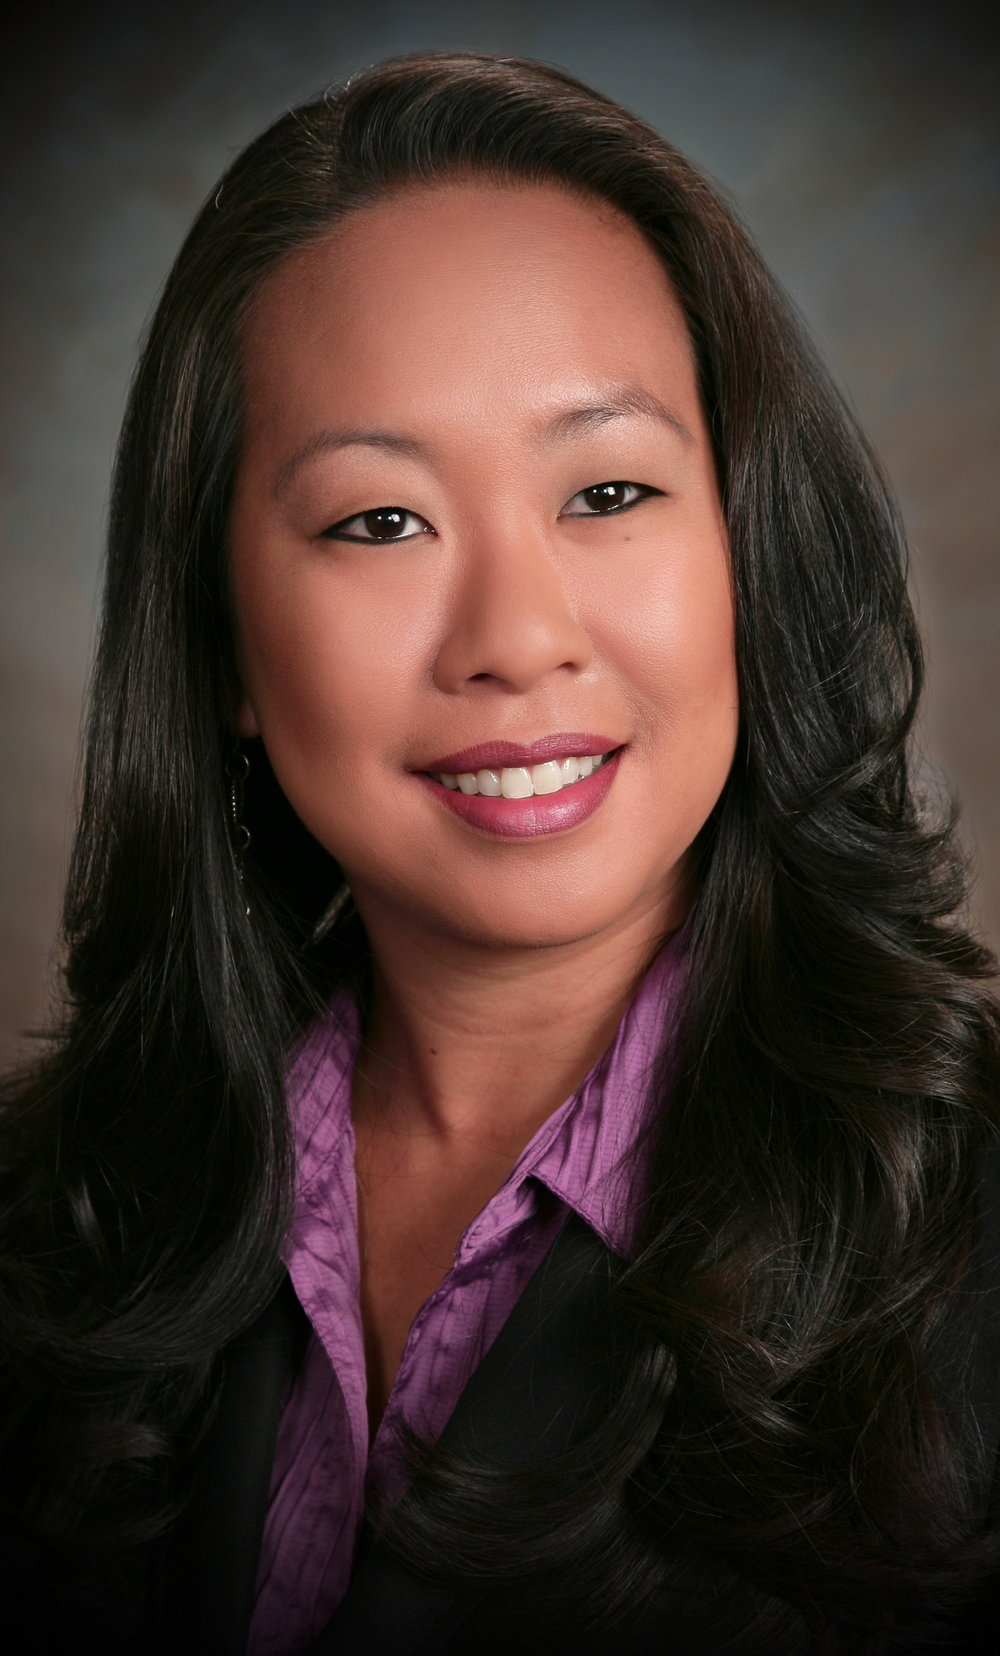 Teresa Wu, MD   Director, Point of Care Ultrasound Program & Fellowships  Banner University Medical Center-Phoenix  Simulation Curriculum Director  Director, Simulation Educators Program  Associate Professor, Emergency Medicine  University of Arizona, College of Medicine-Phoenix, AZ